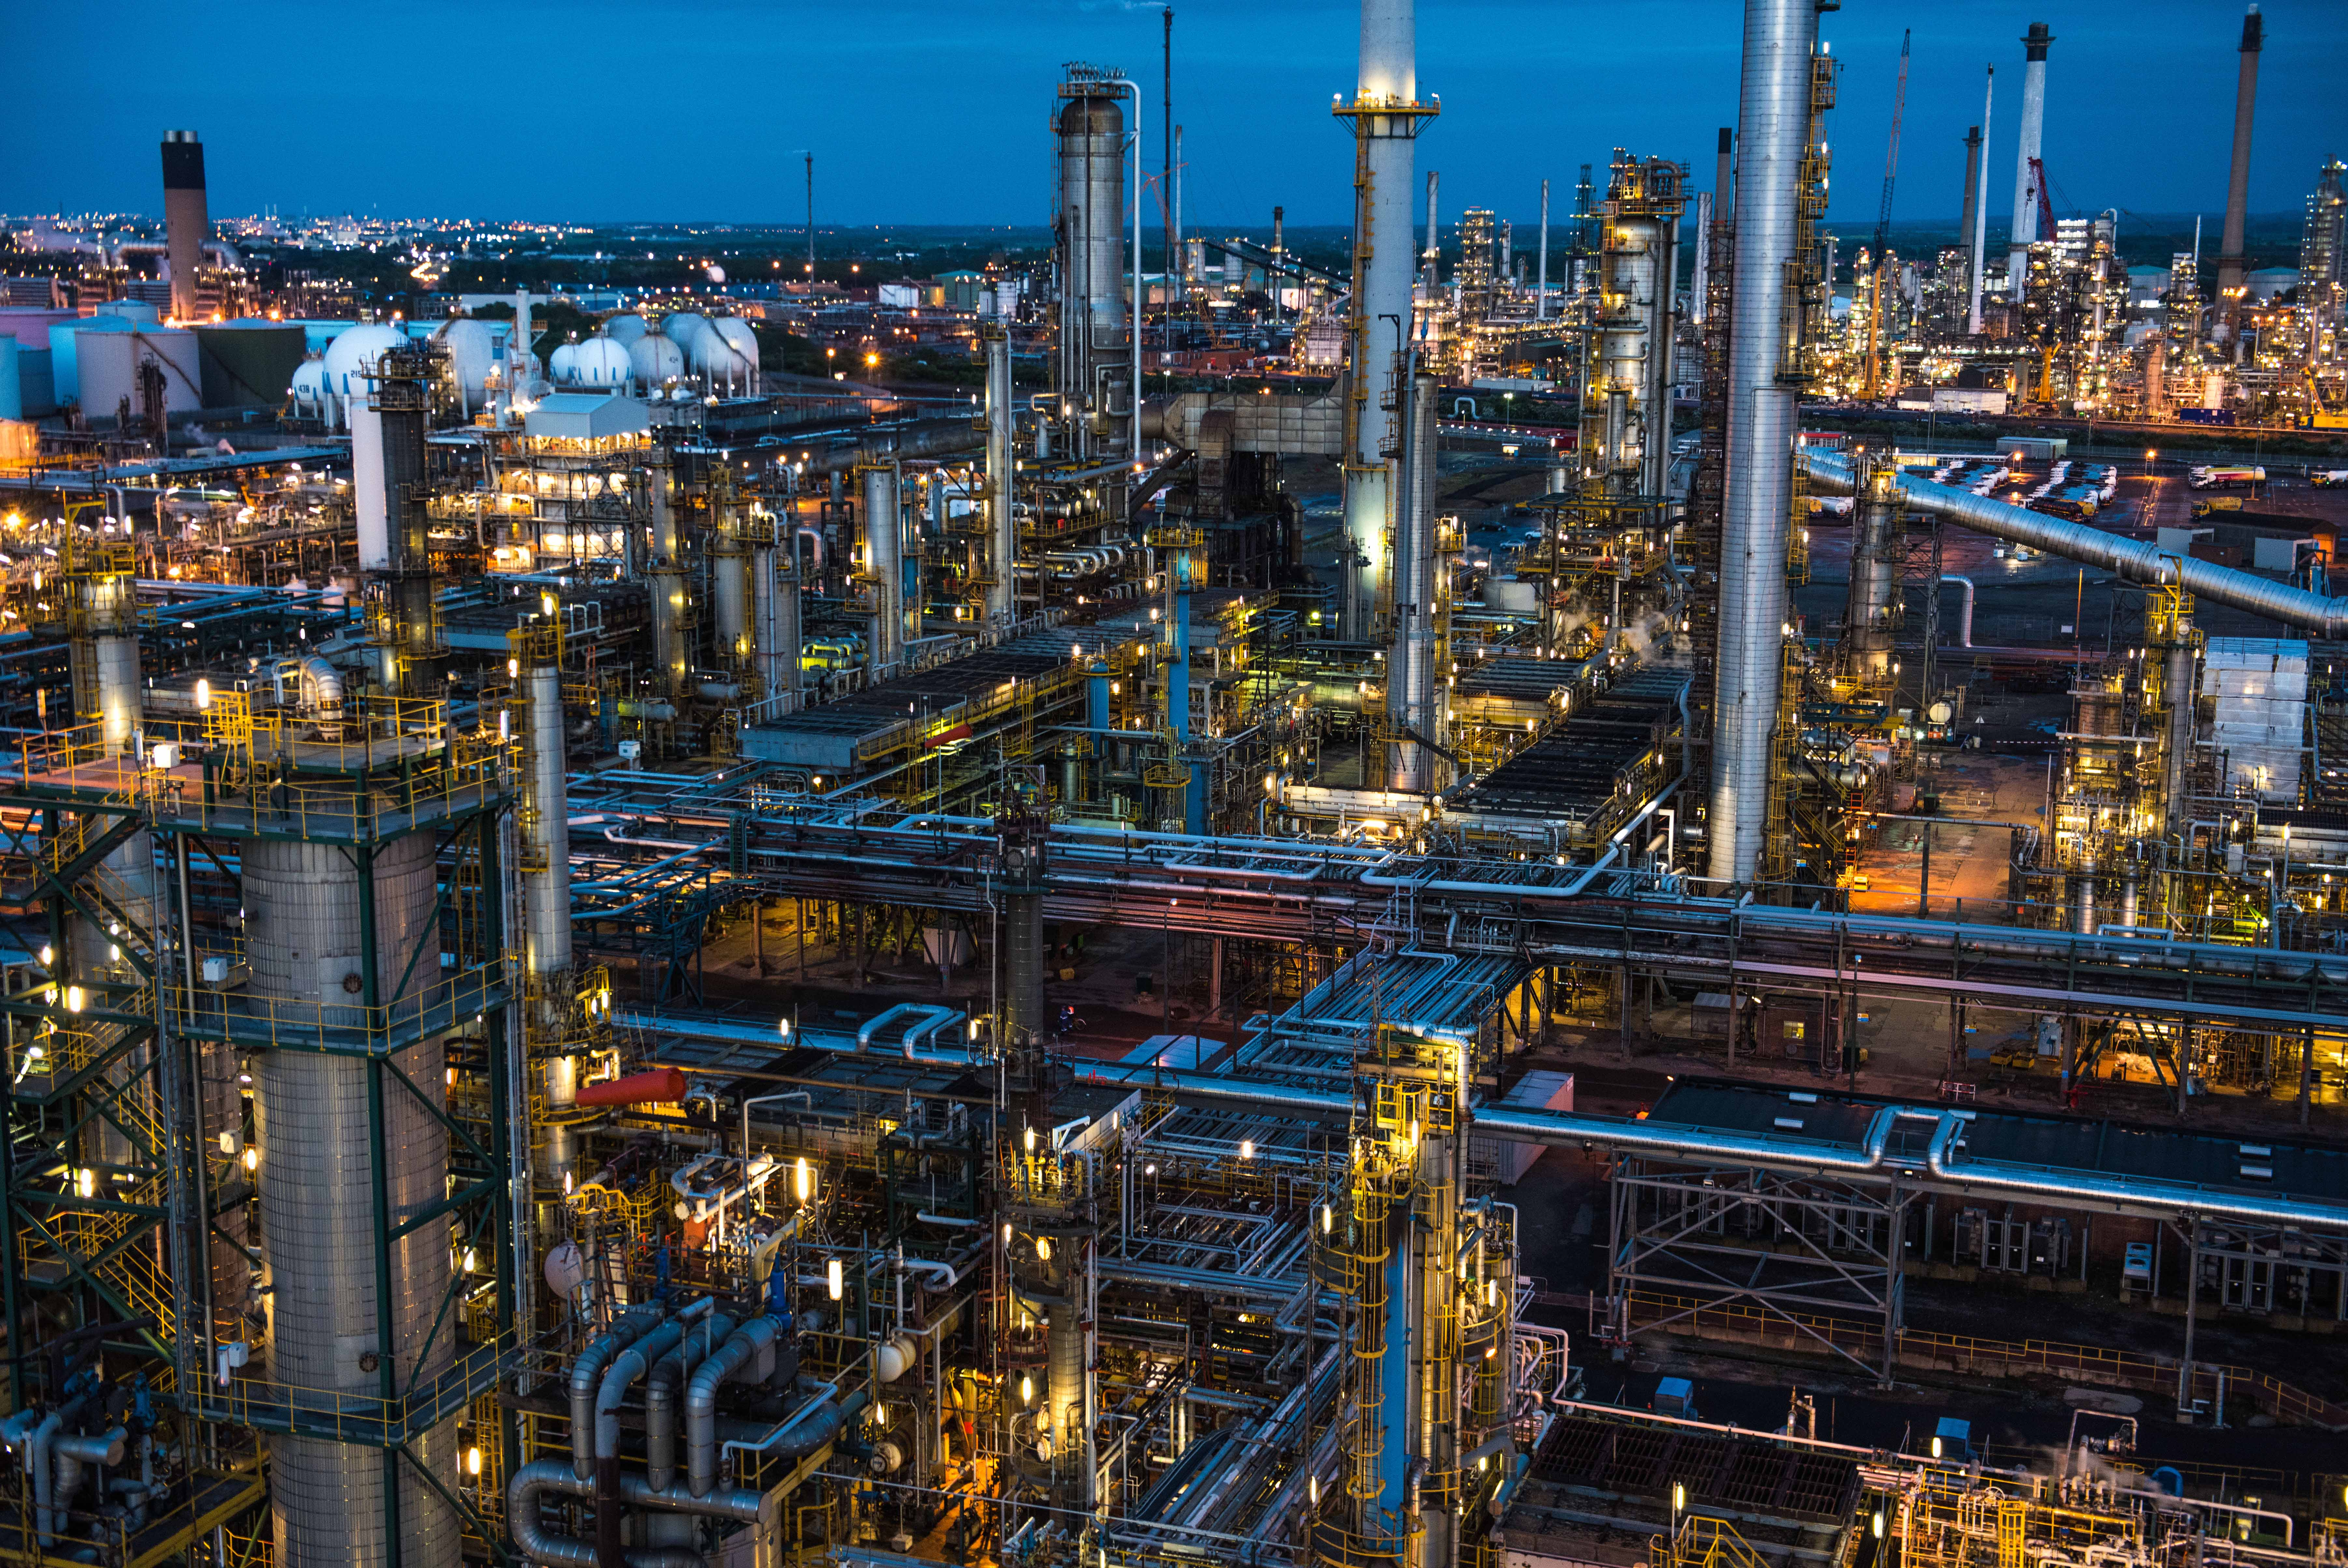 Lindsey Oil Refinery At Dusk